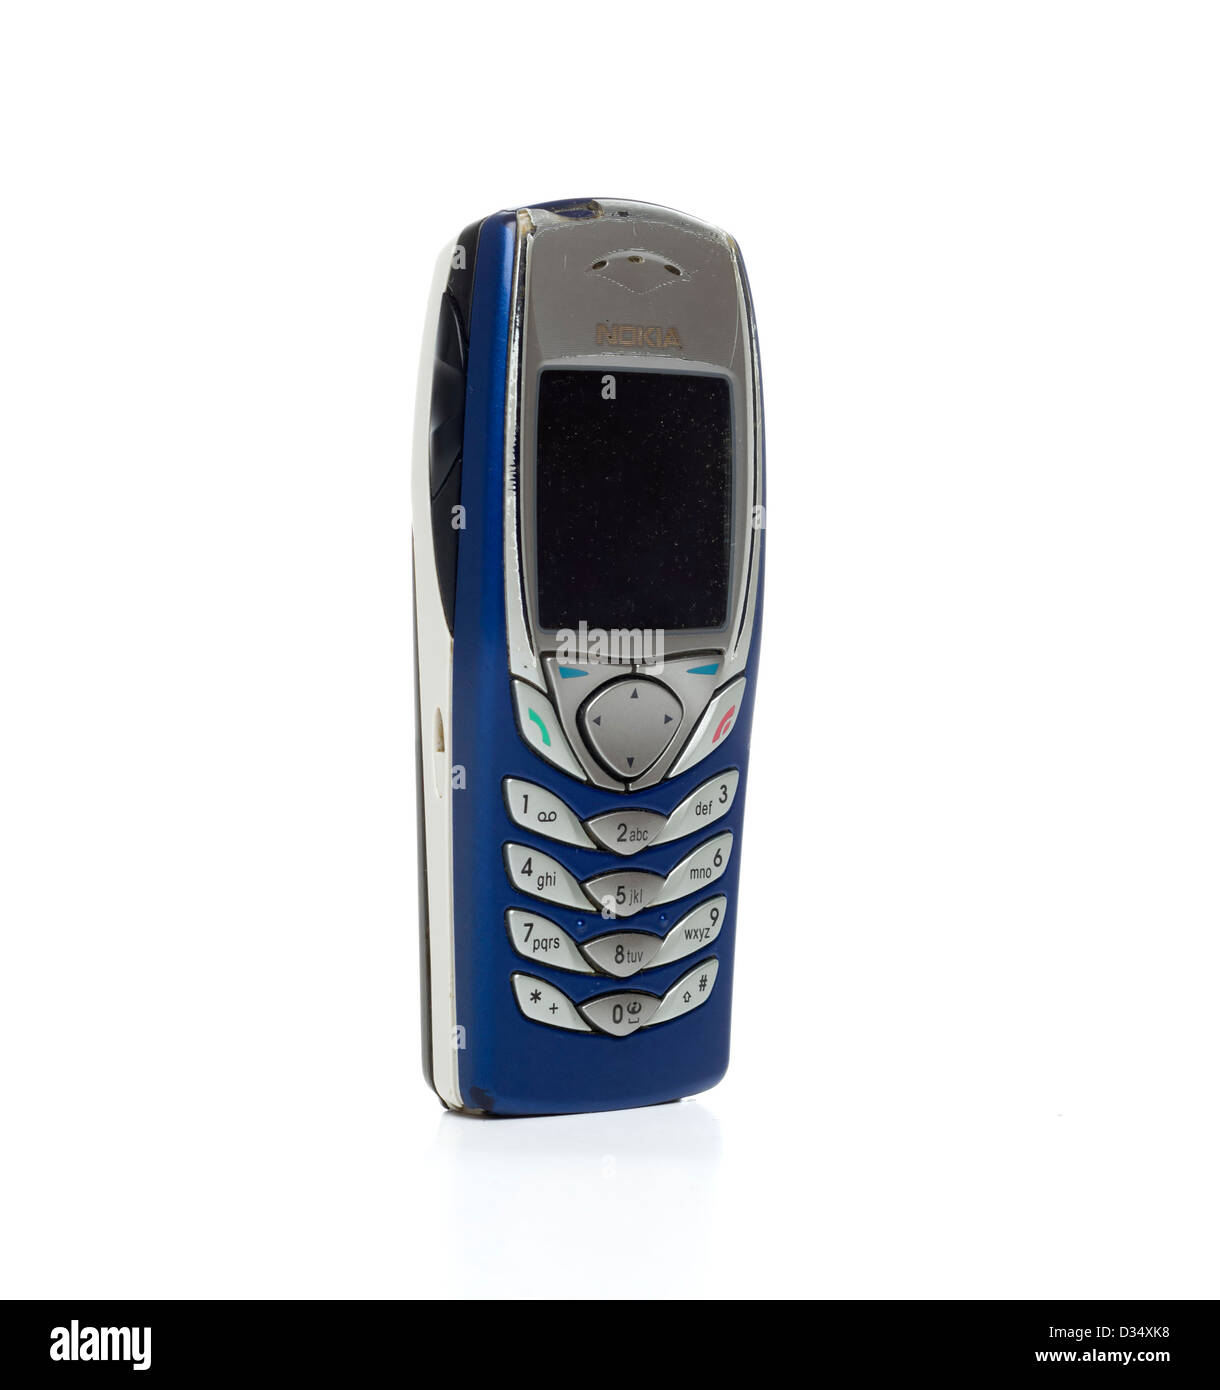 df211d7955545 Old Mobile Phone Stock Photos   Old Mobile Phone Stock Images - Alamy